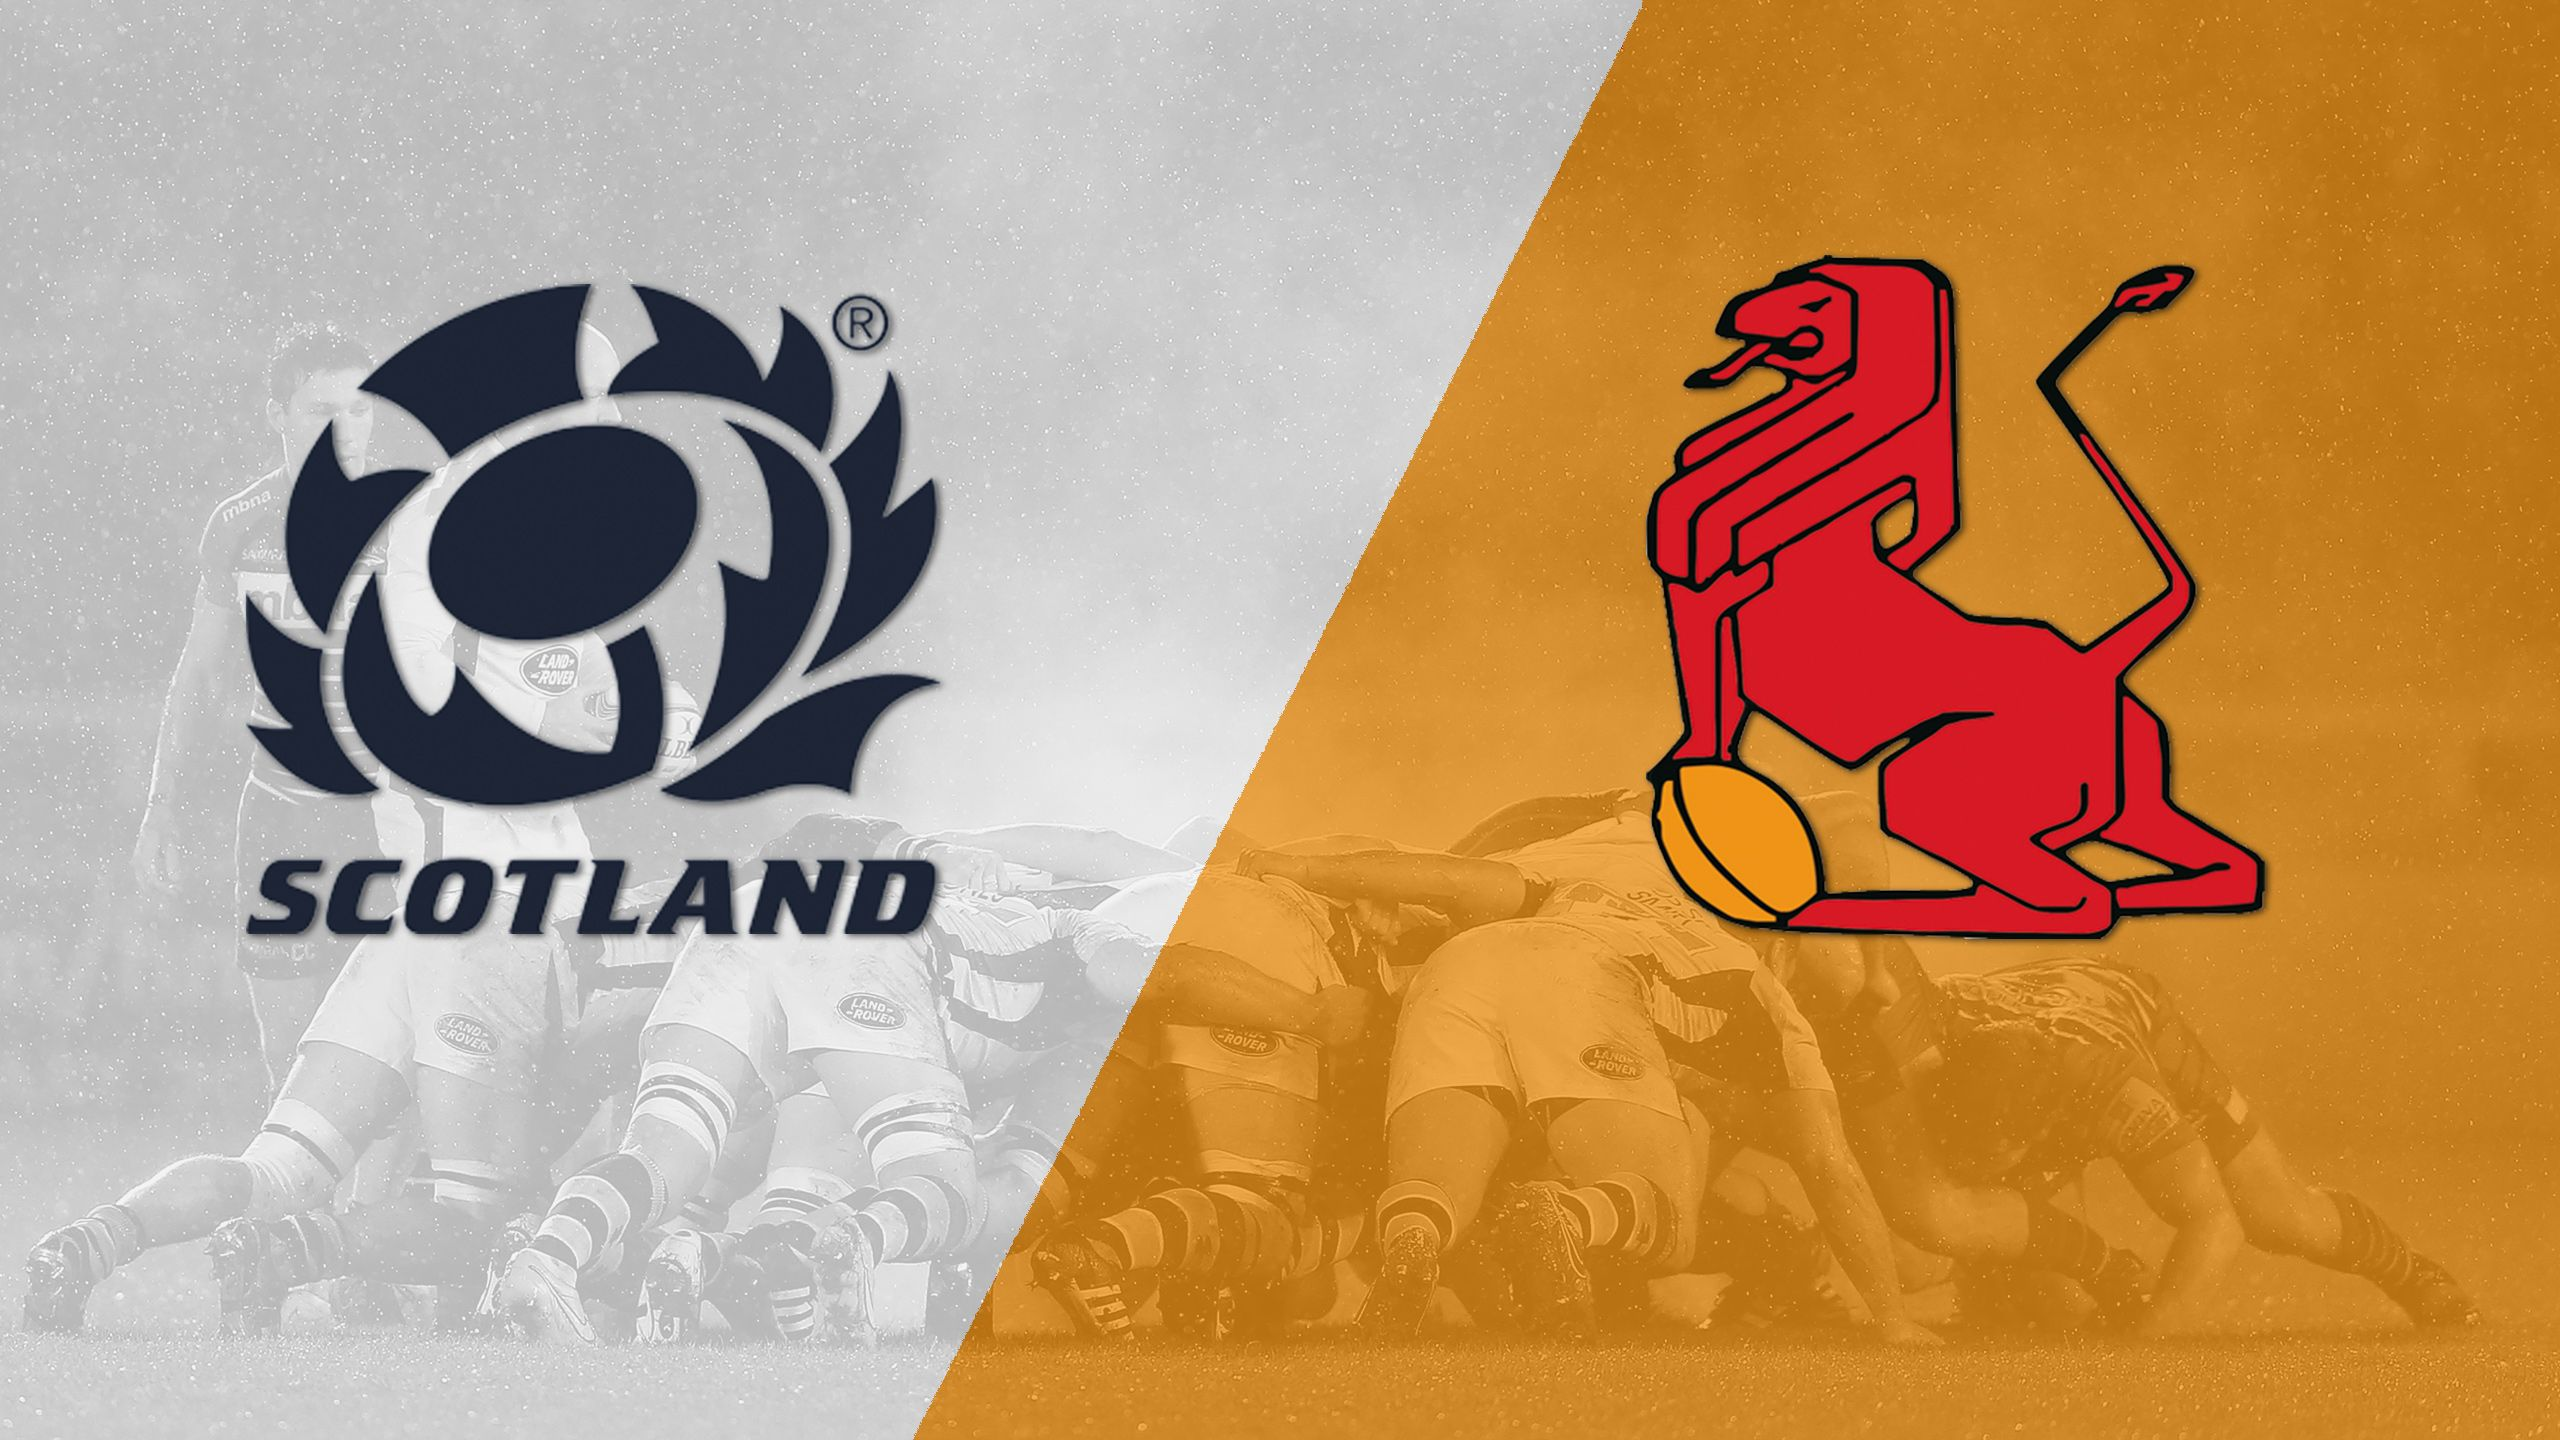 Scotland vs. Spain (13th Place Semi Finals) (World Rugby Sevens Series)